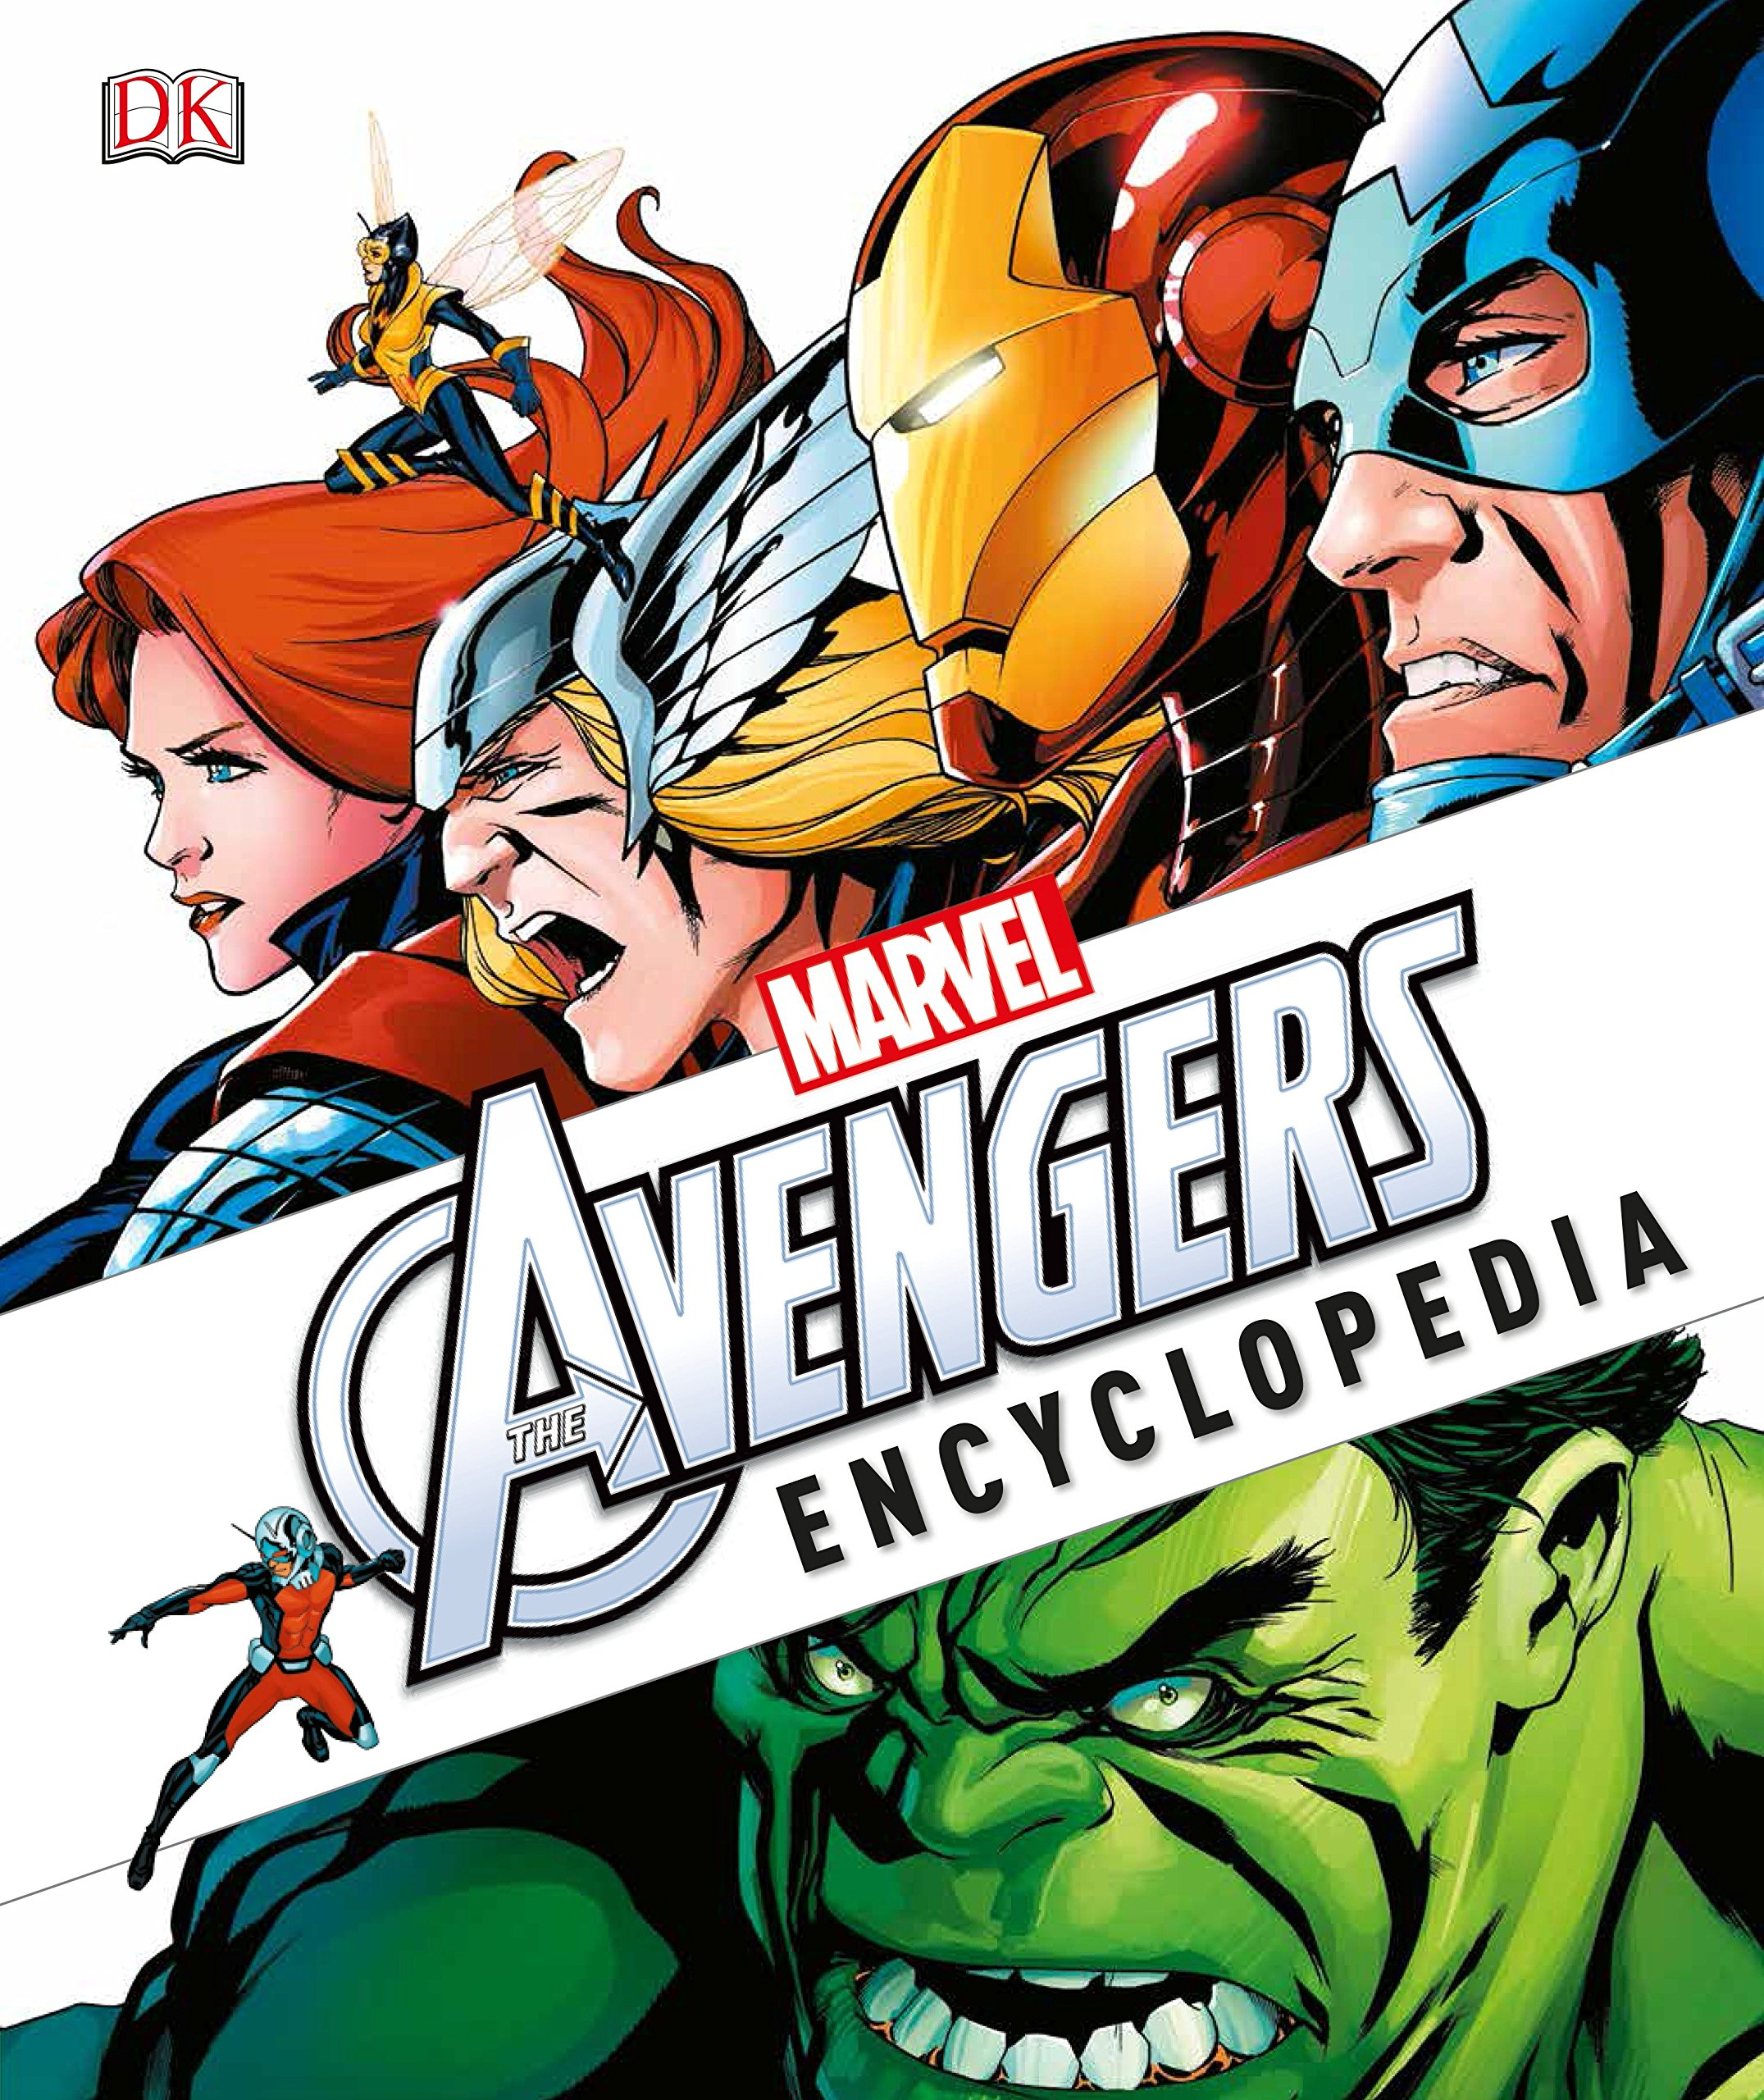 Marvels The Avengers Encyclopedia Matt Forbeck, Daniel Wallace 0783324820232 Books